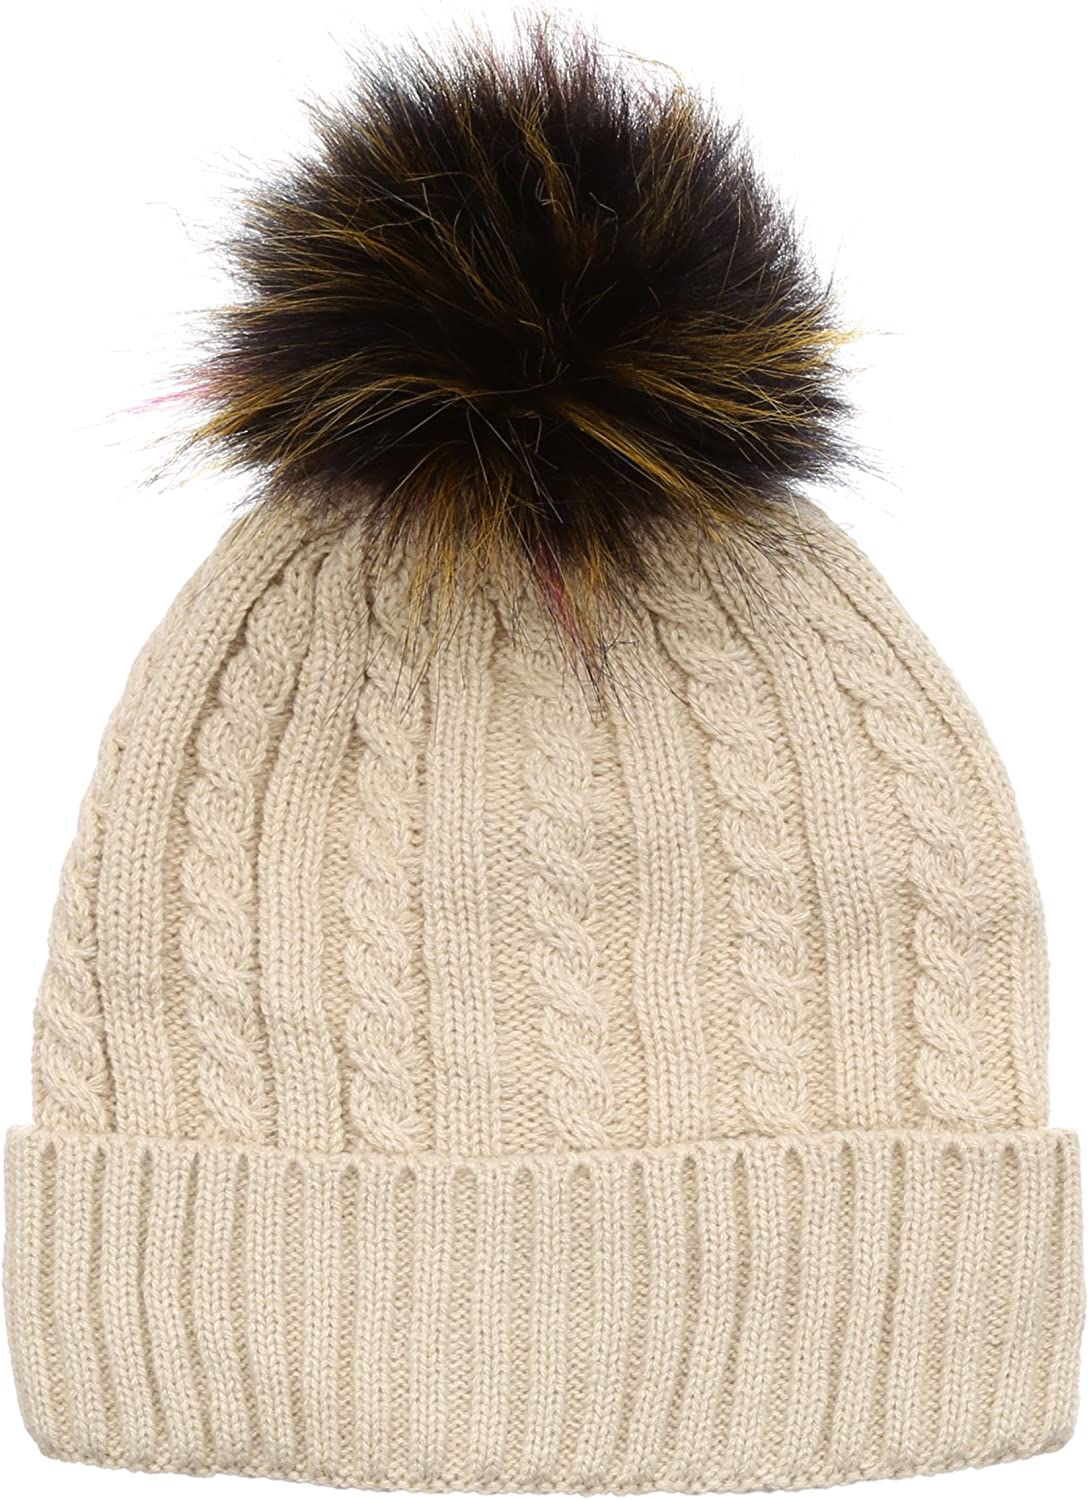 MIRMARU Winter 5 ☆ very popular Cable Knitted Faux Fur Beanie 2021 Pom Color Multi